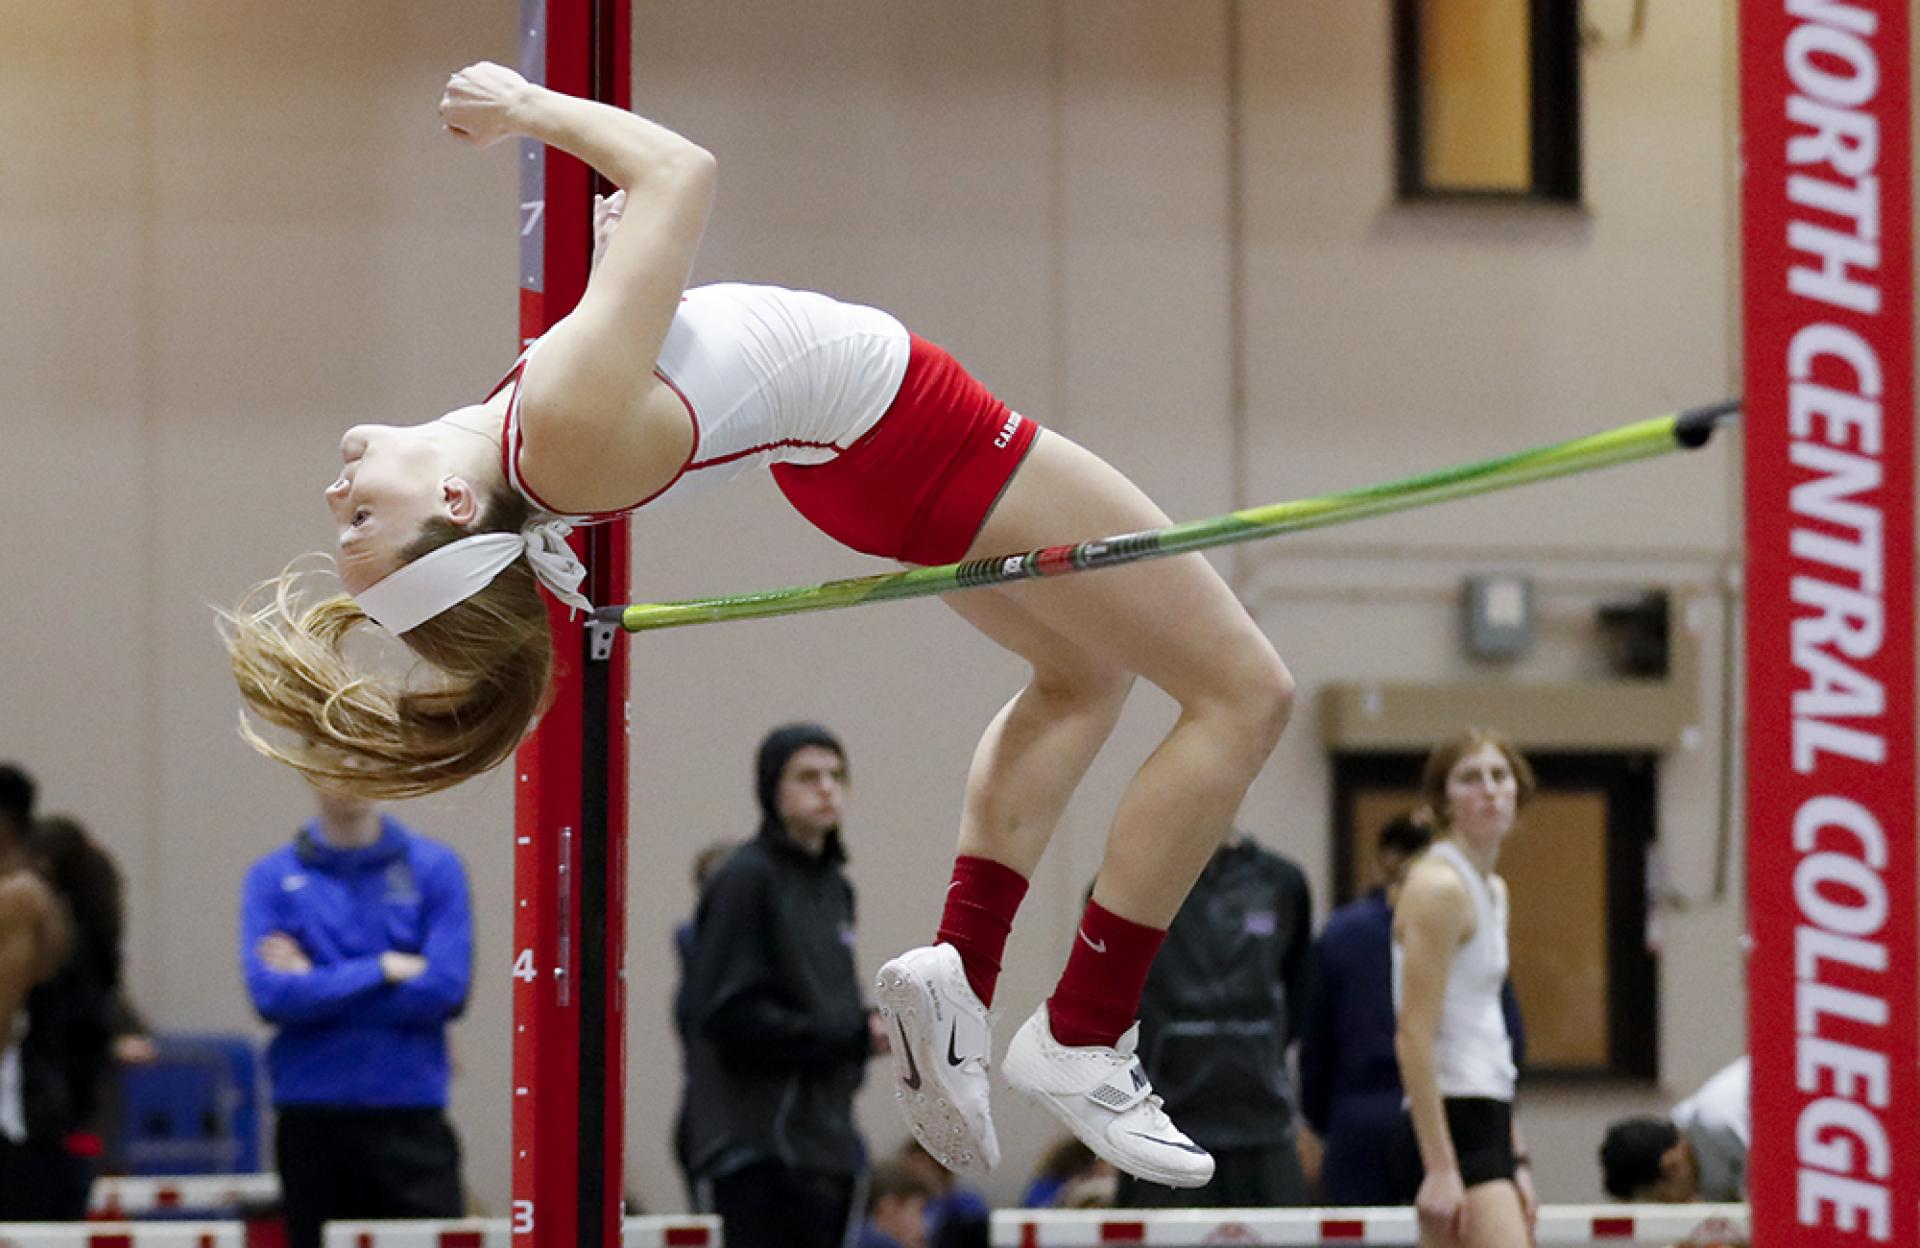 High jumper Taiah Gallisath clears the bar during a North Central College women's track meet.